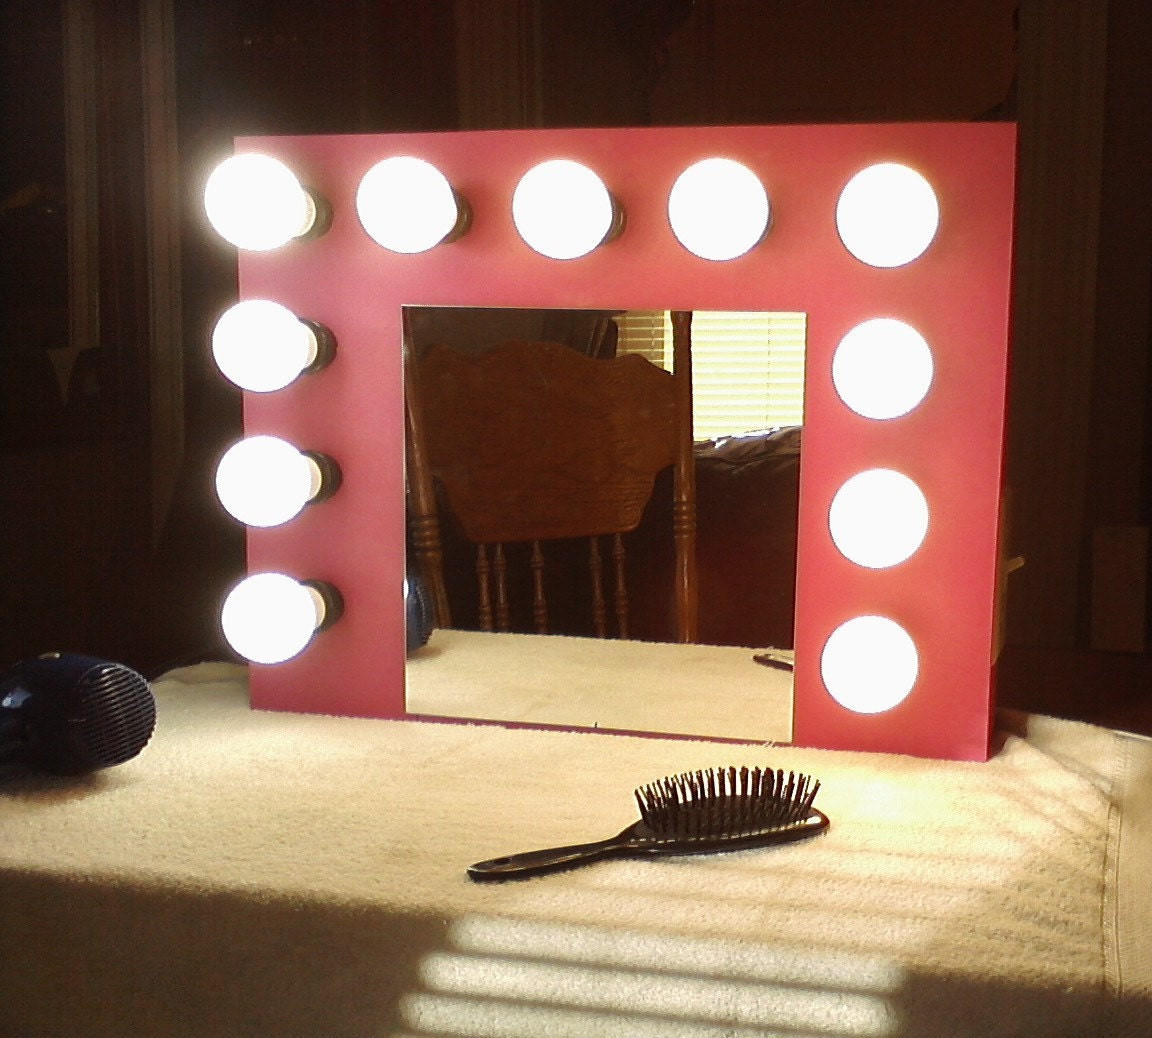 Vanity Mirror With Lights Hollywood Style : Hollywood-style lighted vanity mirror for kids by YippidysMirrors